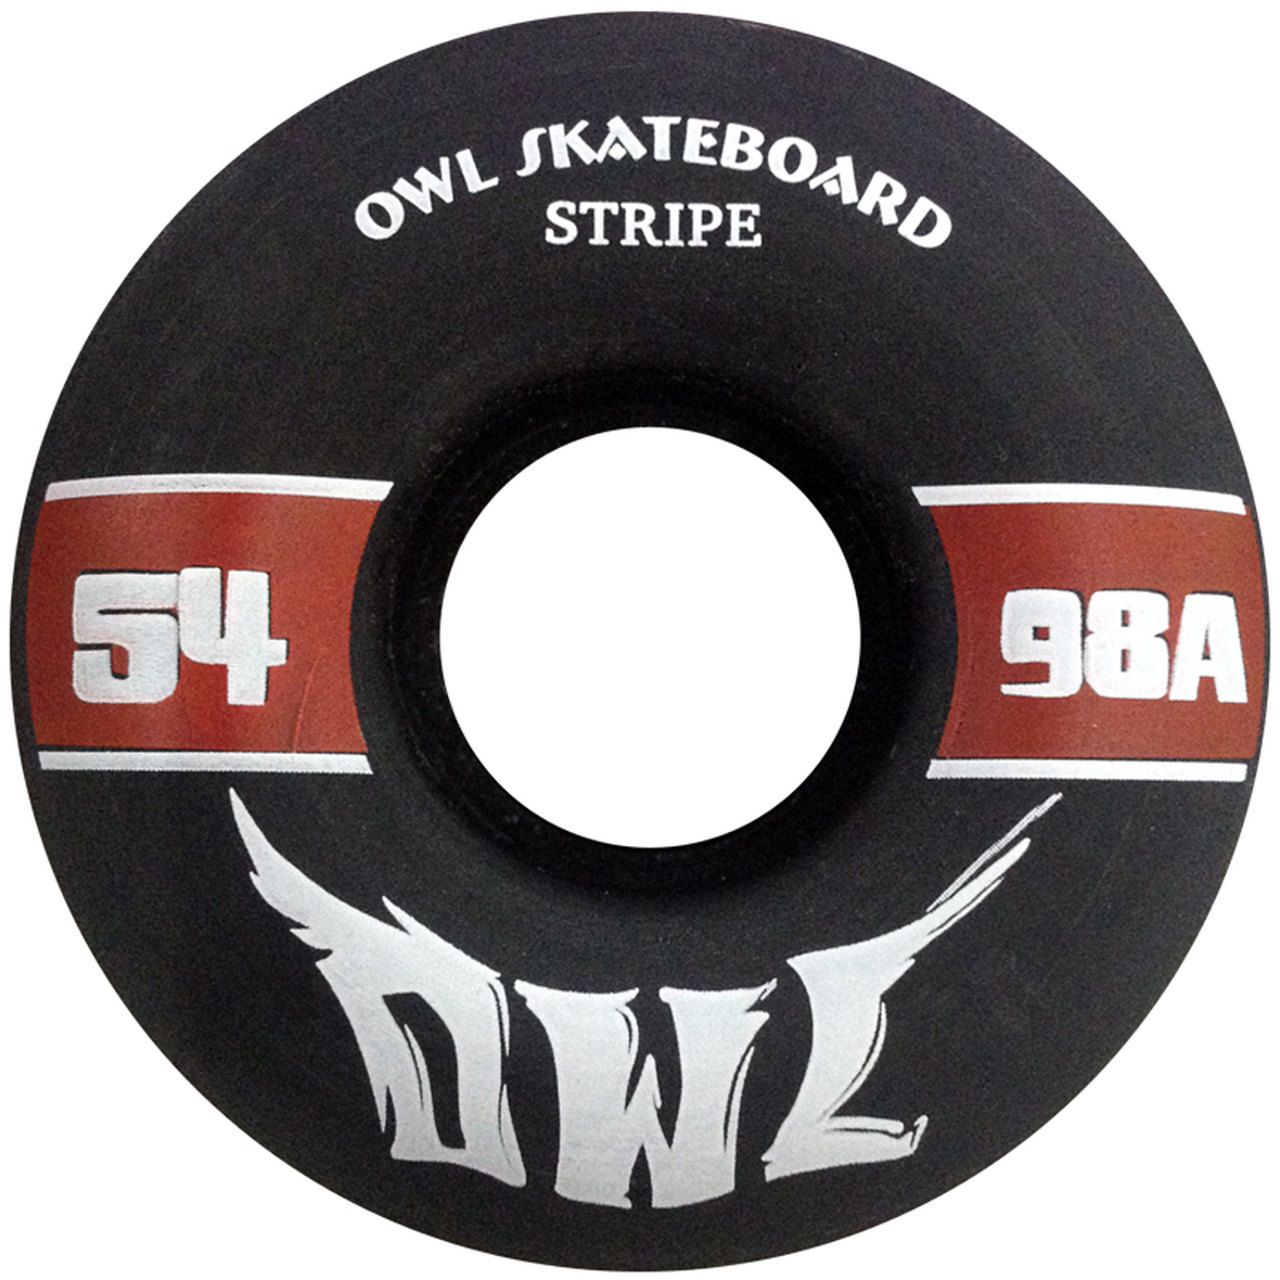 Roda De Skate Owl Sports Stripe 54mm